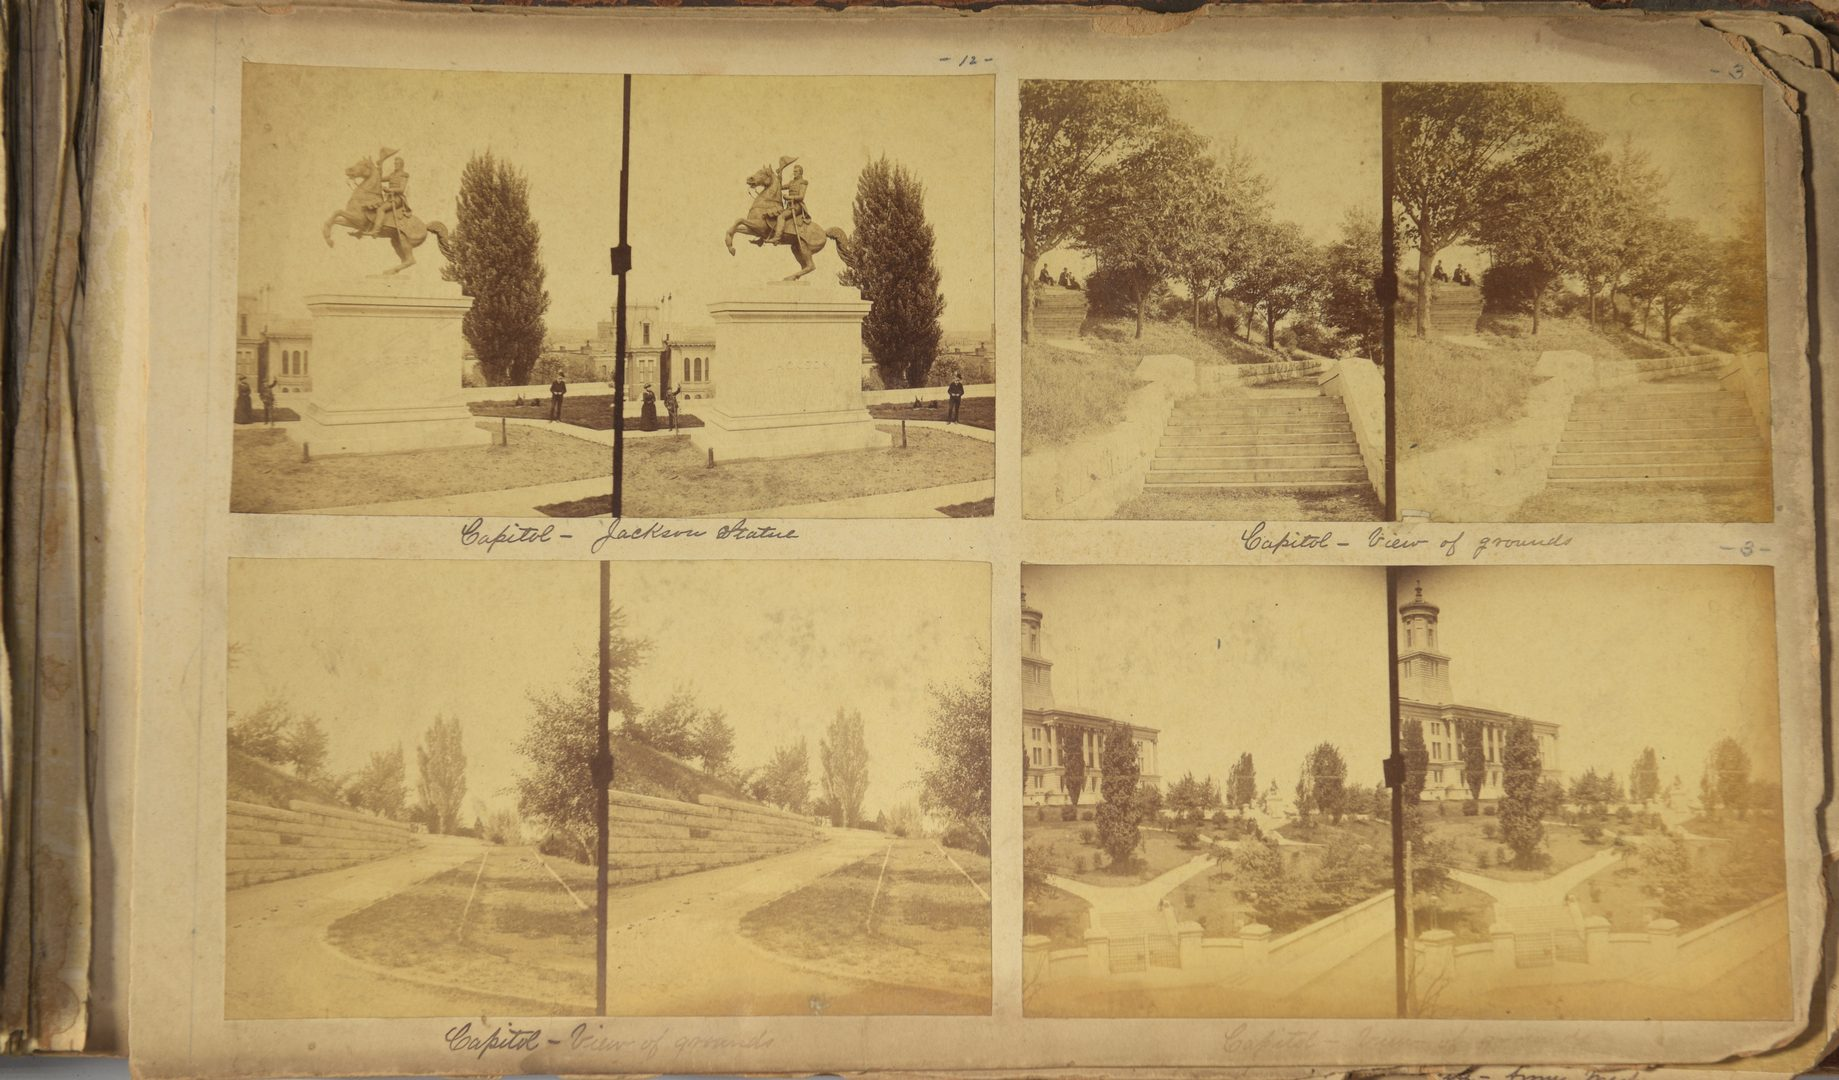 Lot 254: Giers Nashville Archive 1 – Album of Stereoview Images